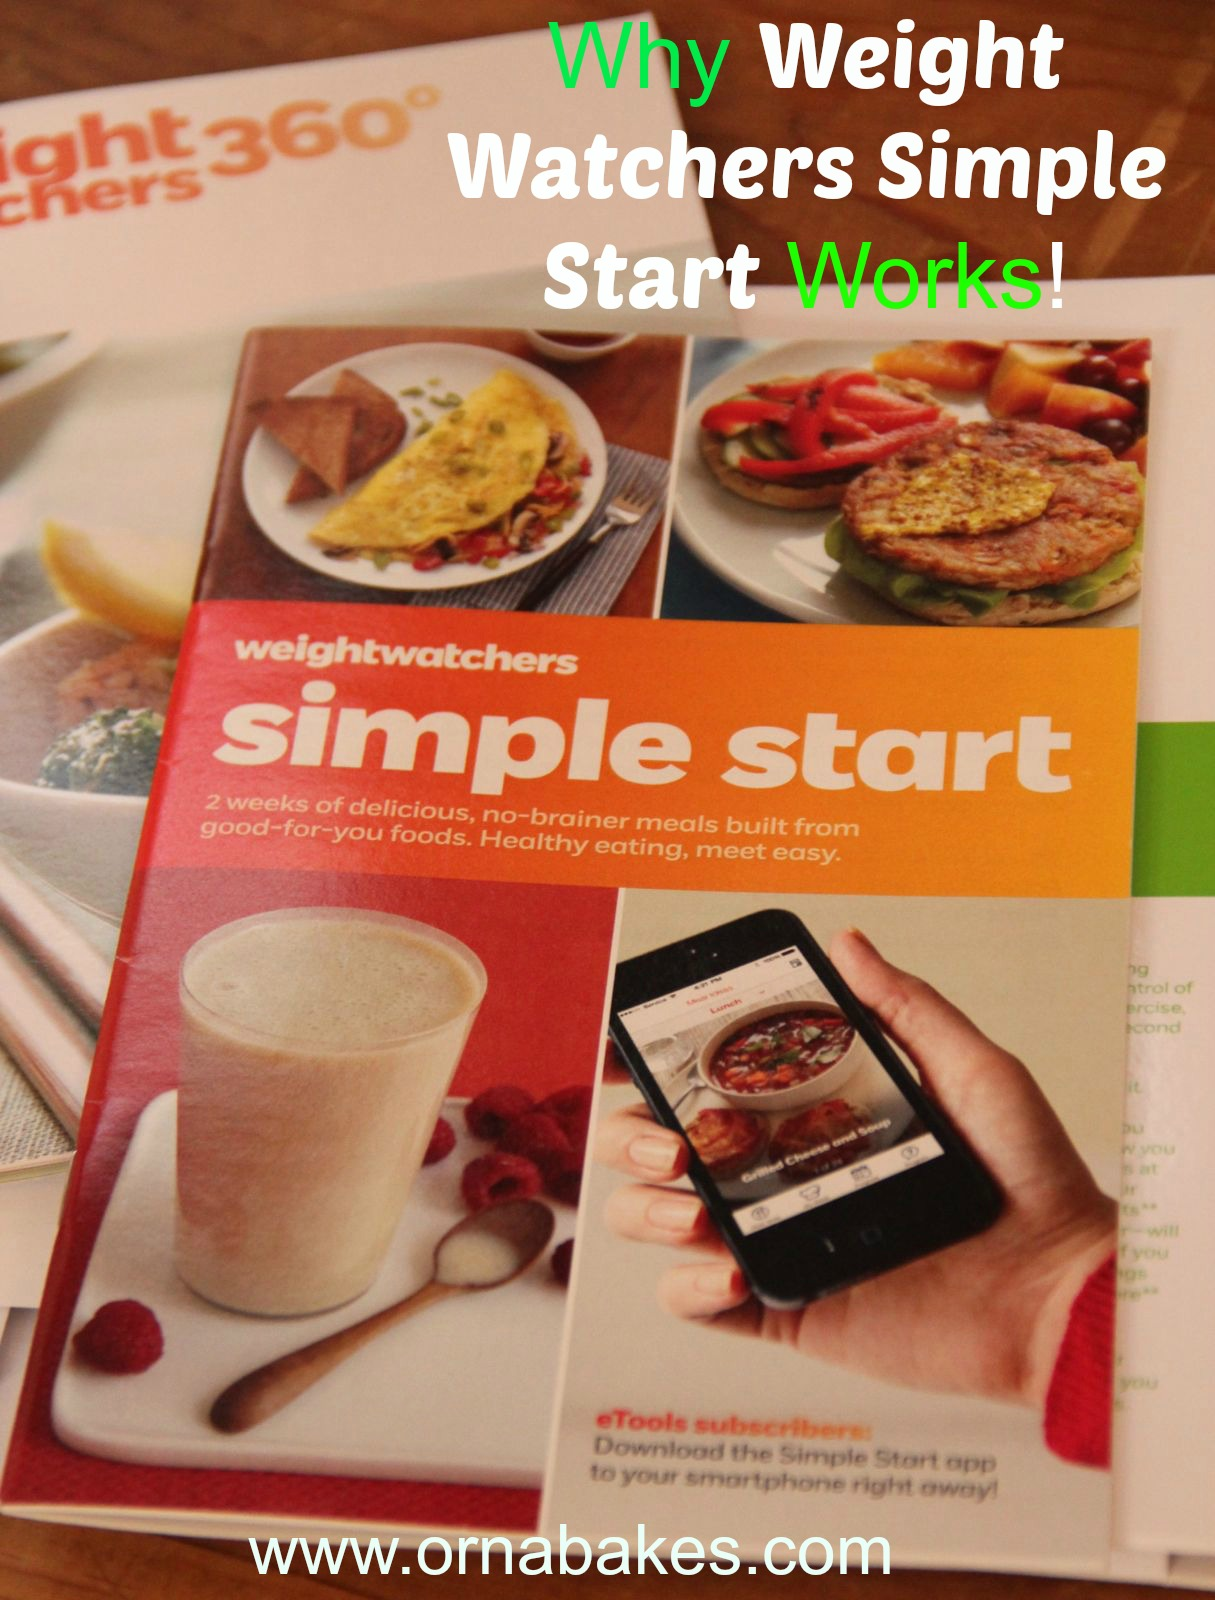 Weight watchers simple start works ornabakes why weight watchers simple start works nvjuhfo Images